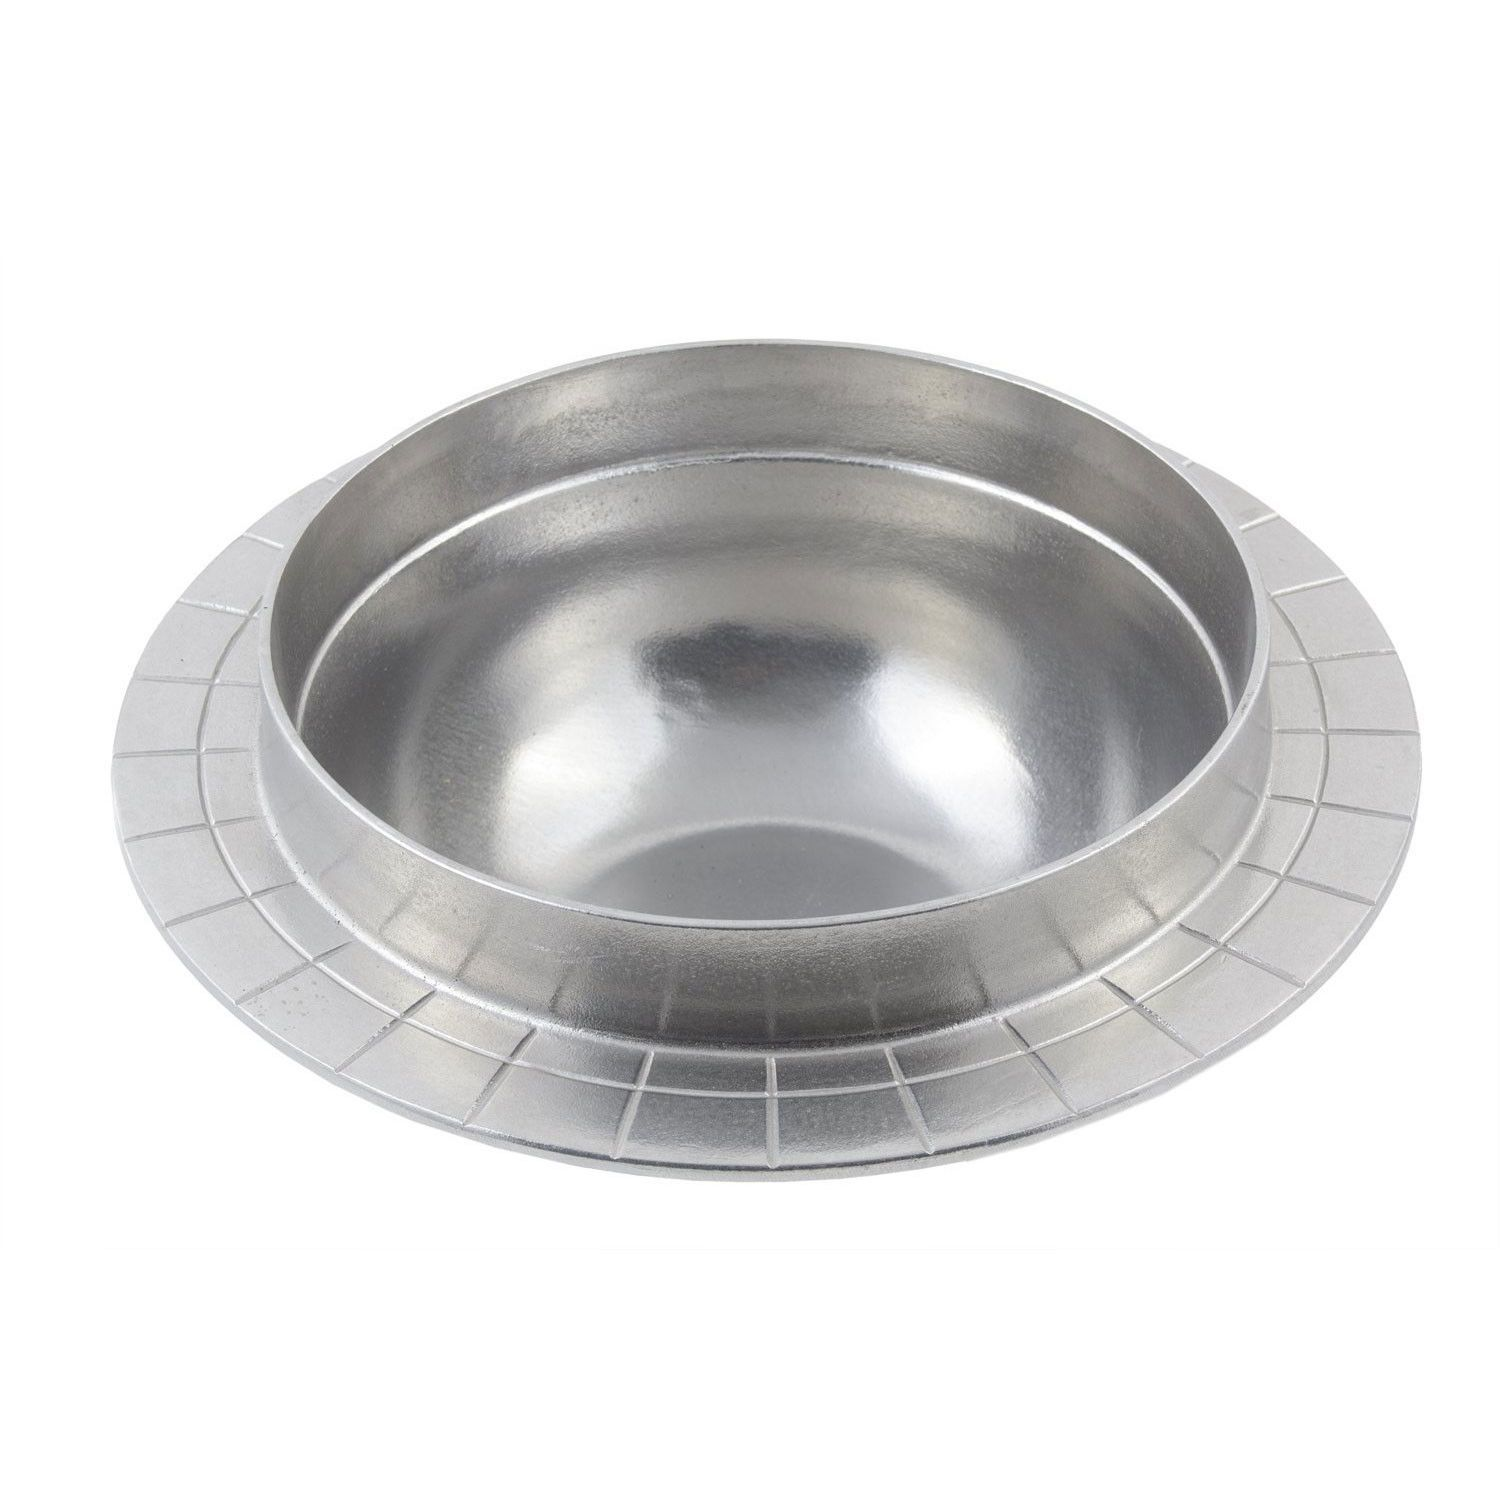 2 gal 11 3/8 x 6 inch Soupwell for Round Chafer Pewter Glo